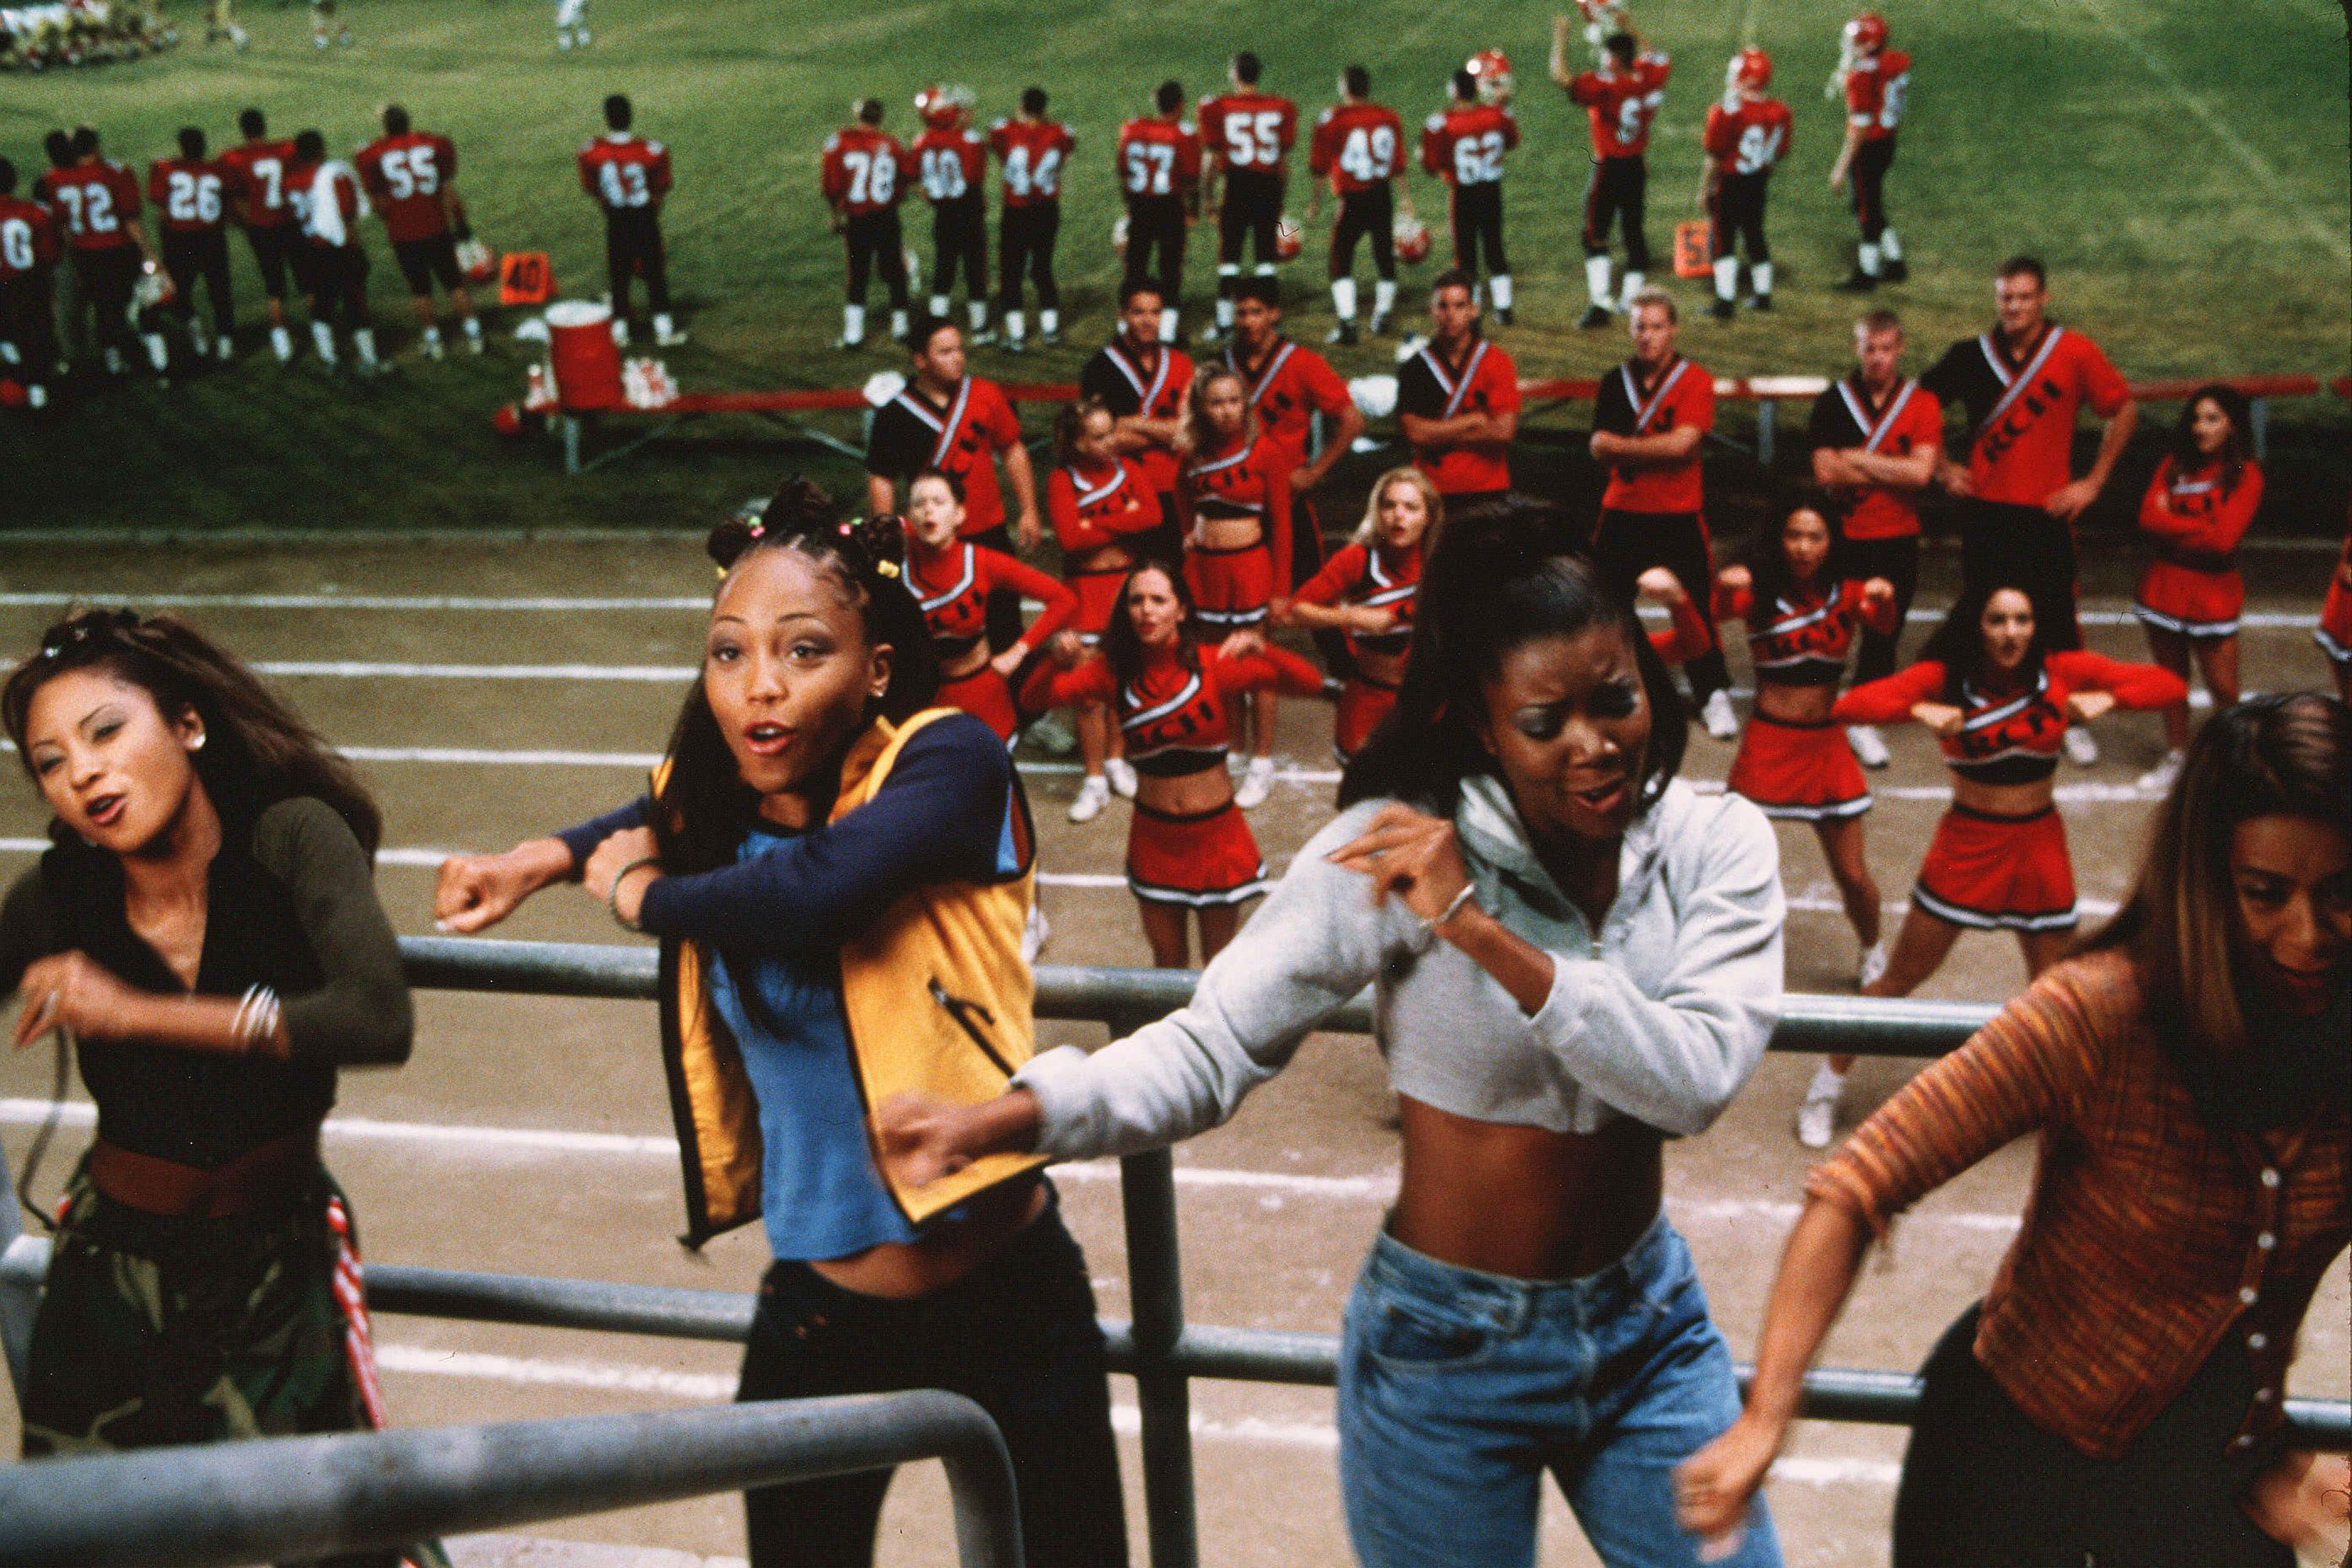 20 Years Later, Bring It On Costumes Are Iconic Fashion